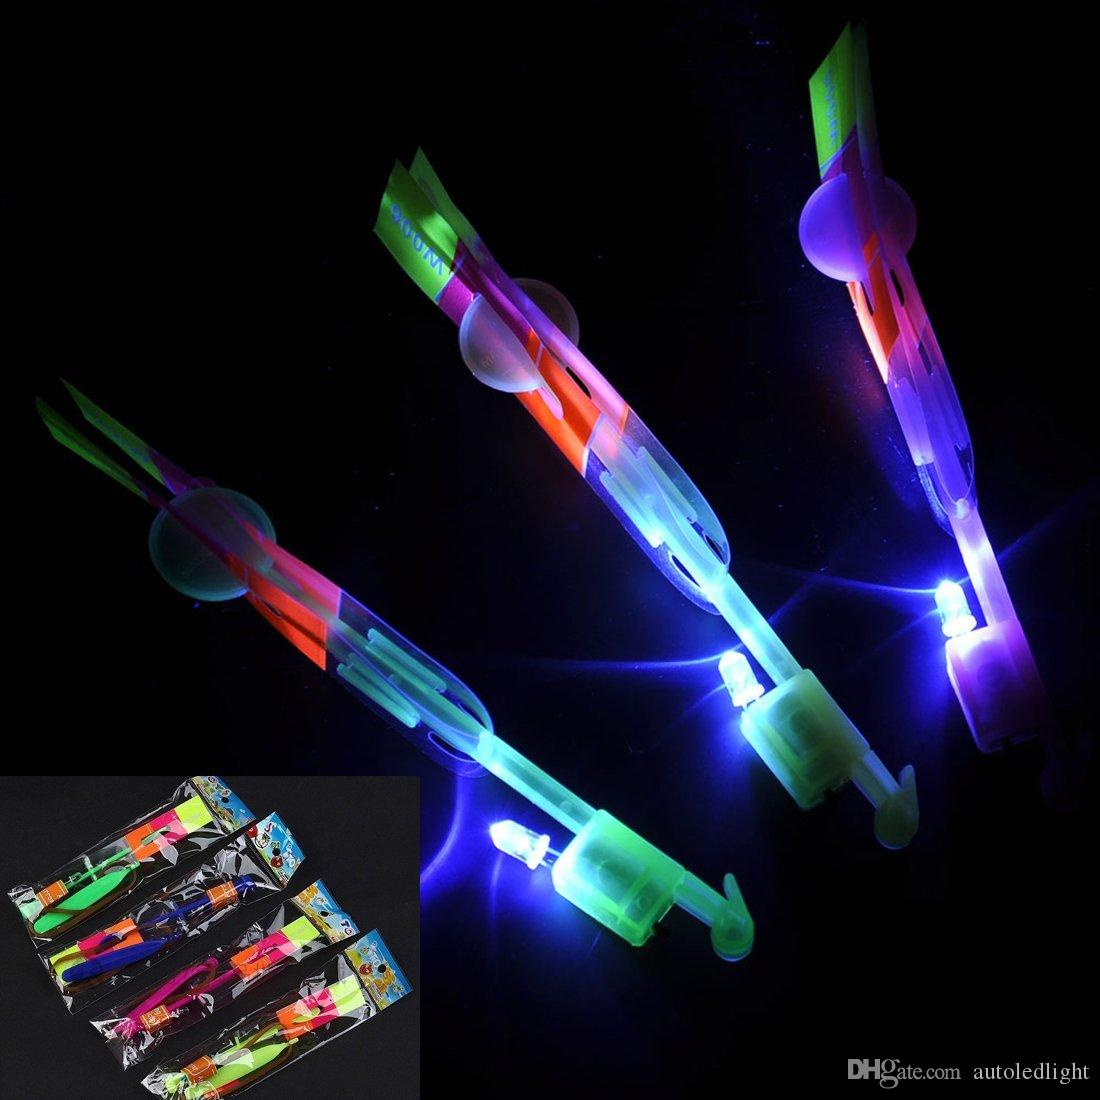 amazing 588 arrow helicopter with 392606785 on 38 Led Flying Umbrella together with Sell laser finger beams 10301699 in addition Opinion On Usa Distributors From Amazing Arrow 588 Arrow Helicopter moreover 392606785 likewise 203 Gigakites Amazing Arrow Helicopter 588.